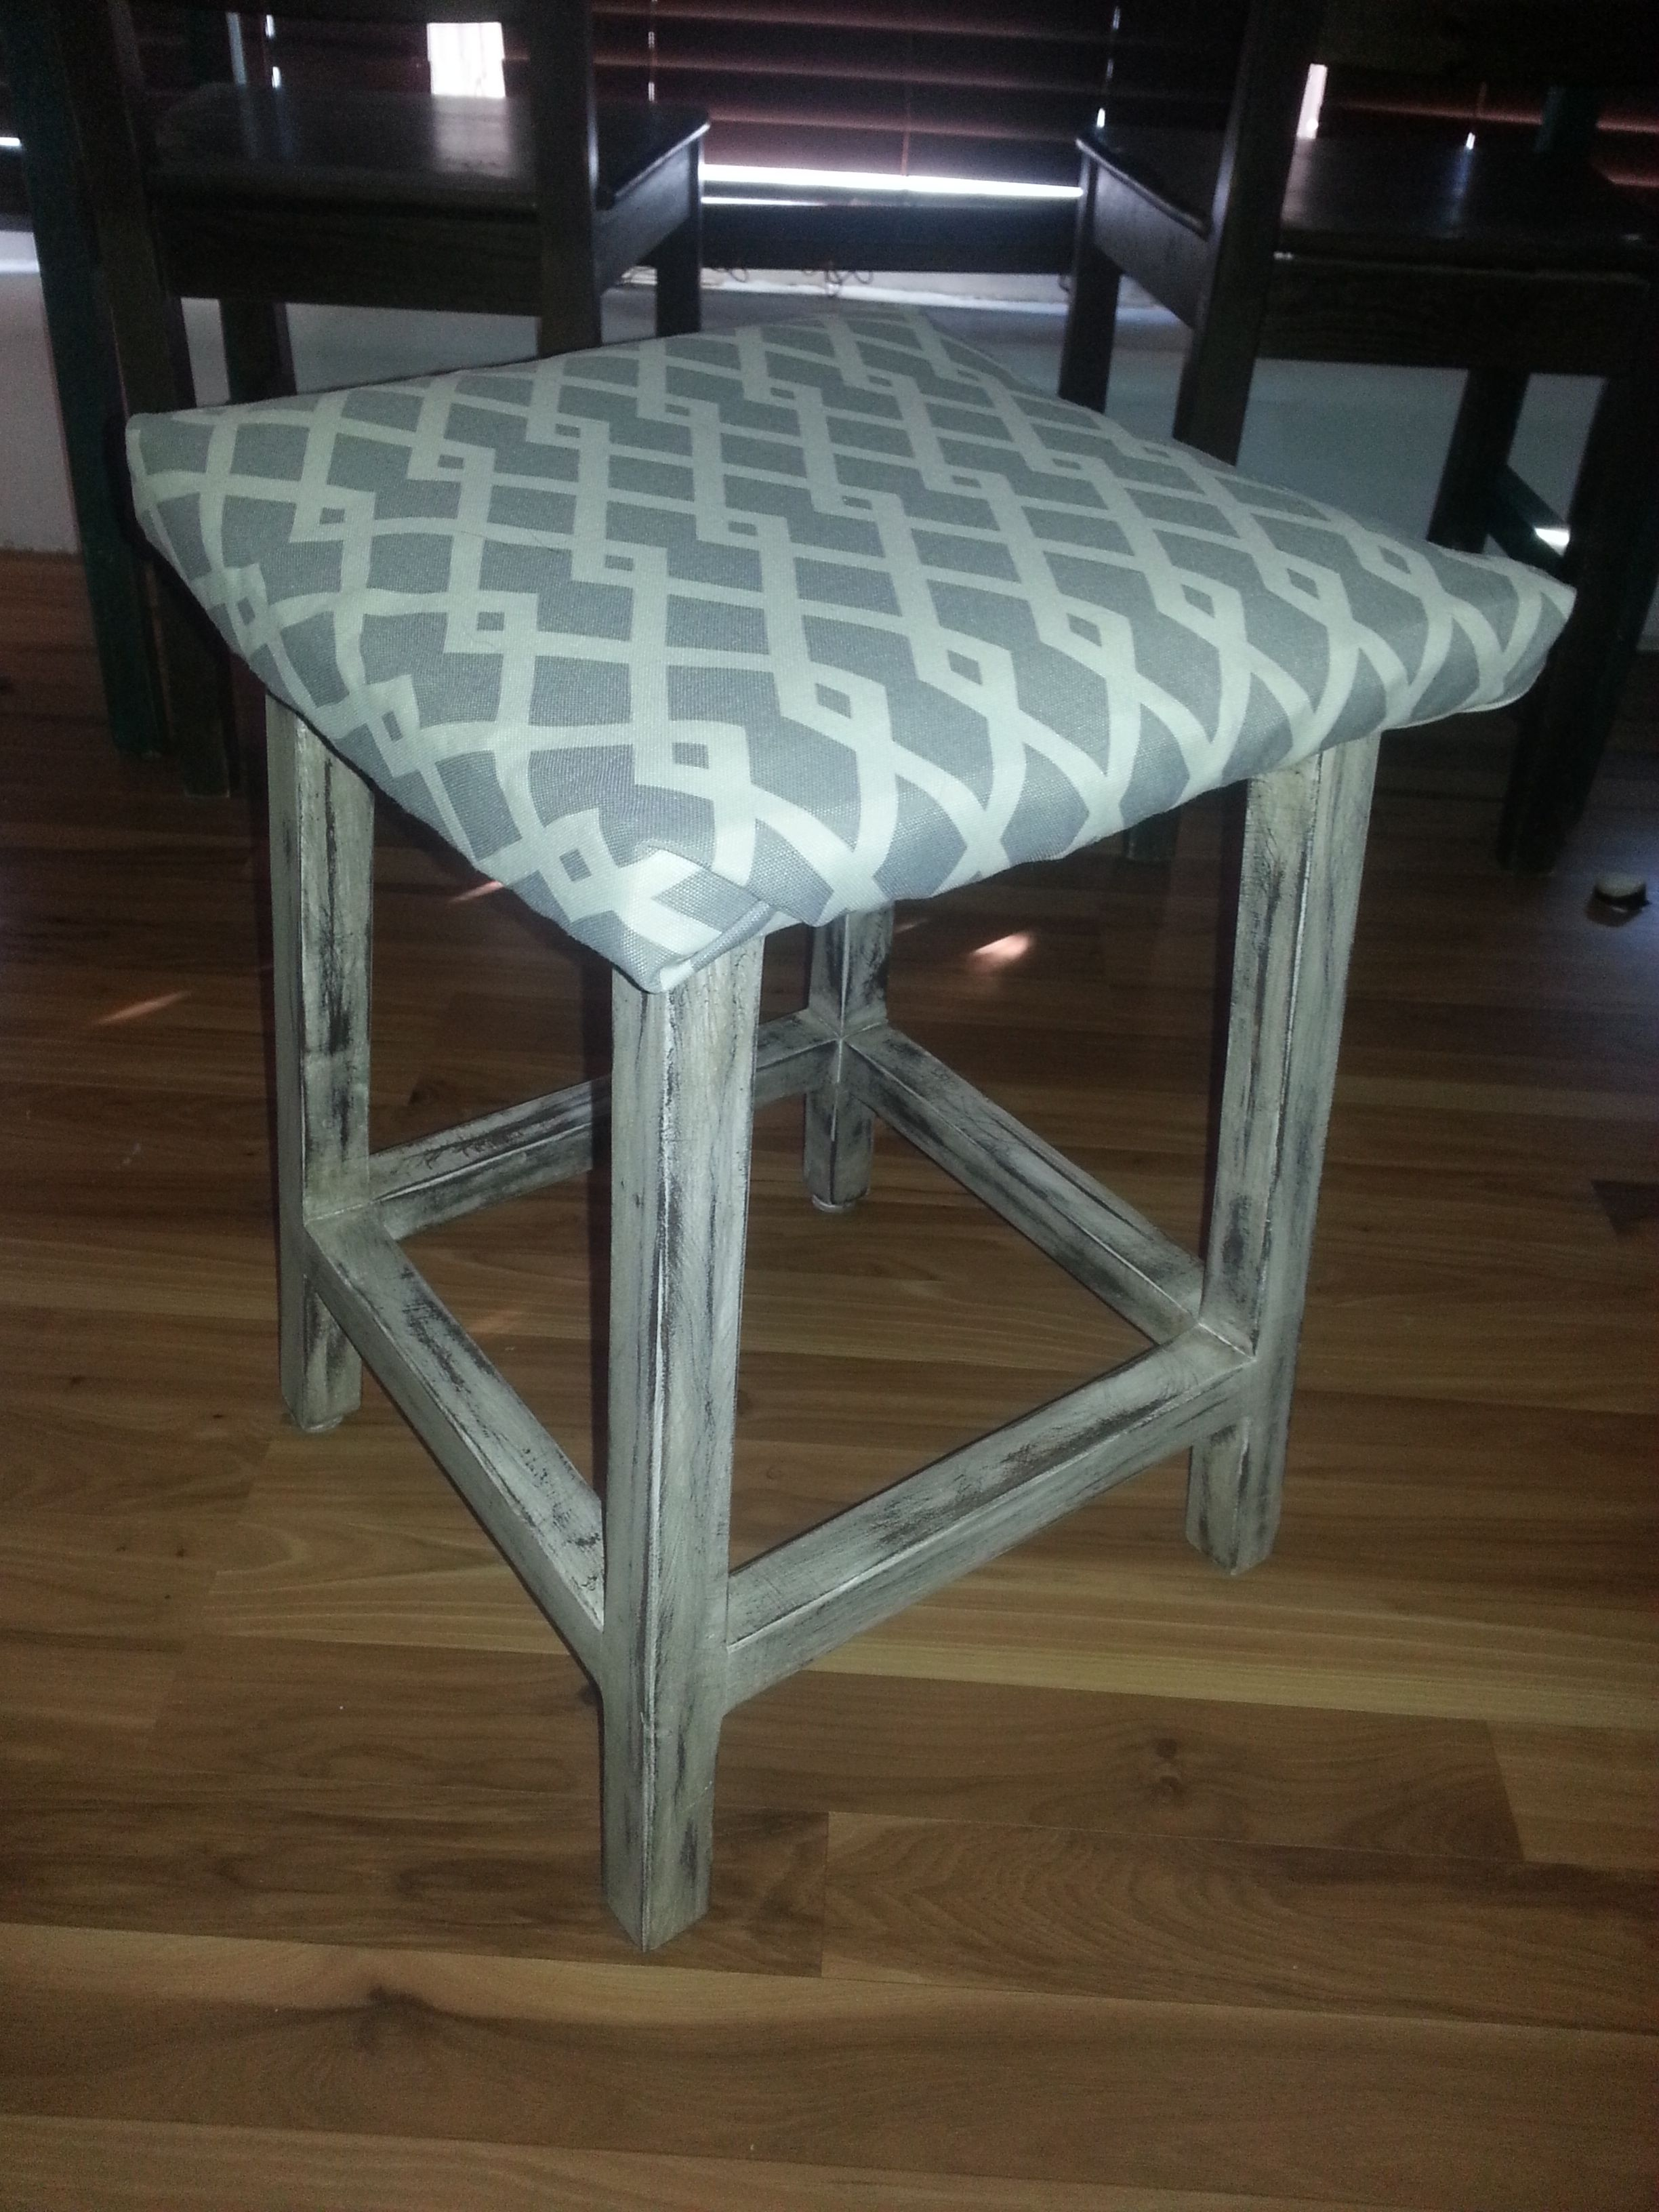 Refinished stool. I sanded and aged the wood, then cover the wicker top with thin piece of cotton and cover with fabric.